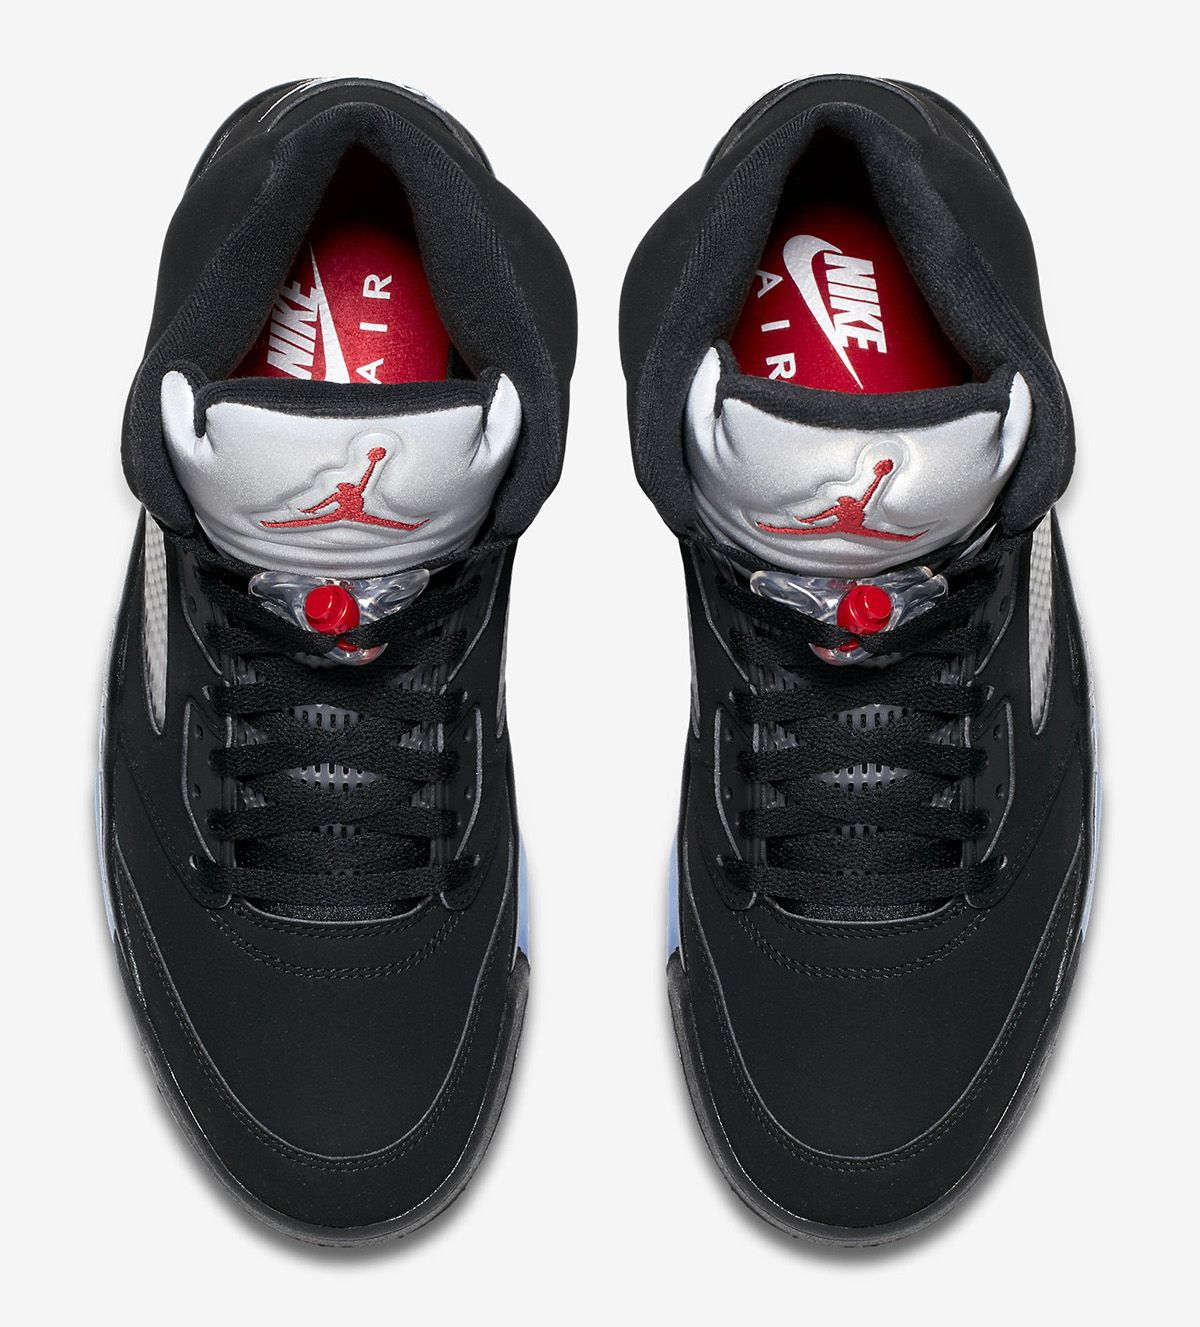 ed16c731b5c031 Official images and release date for the Air Jordan 5 Retro OG Metallic  Silver (colorway  Black Metallic Silver-White-Fire Red